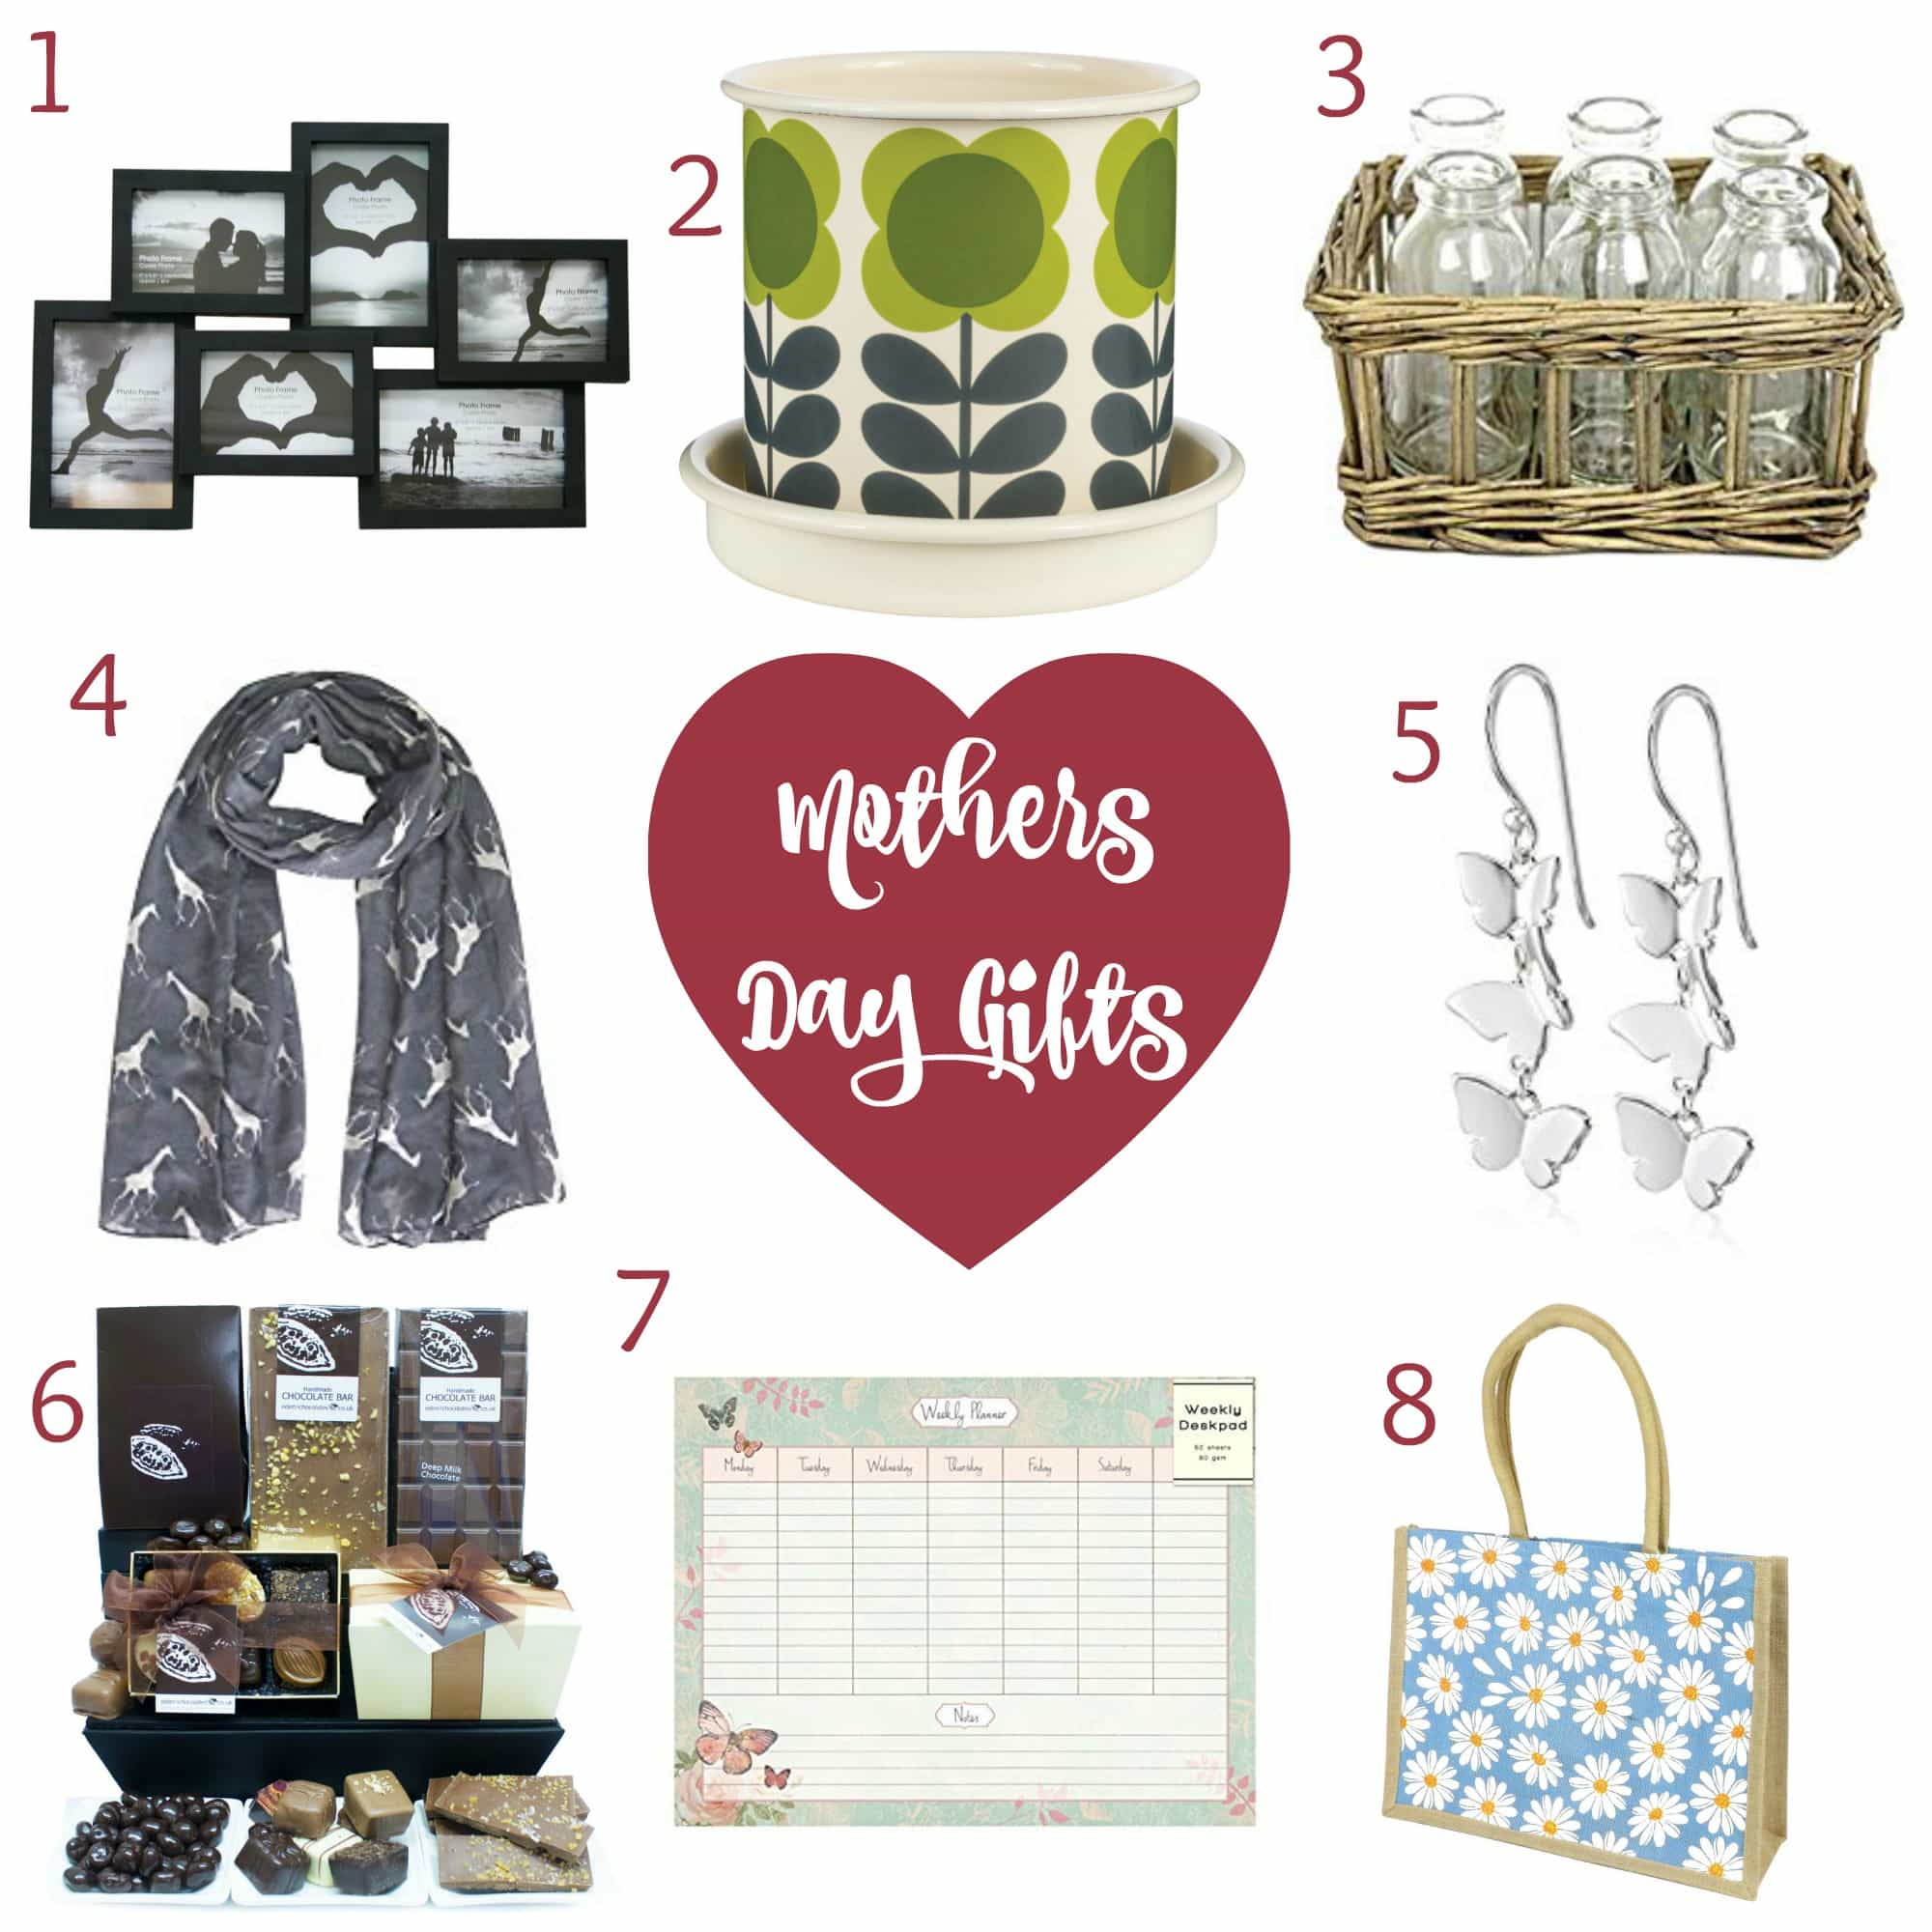 Mothers day gifts under £30 image